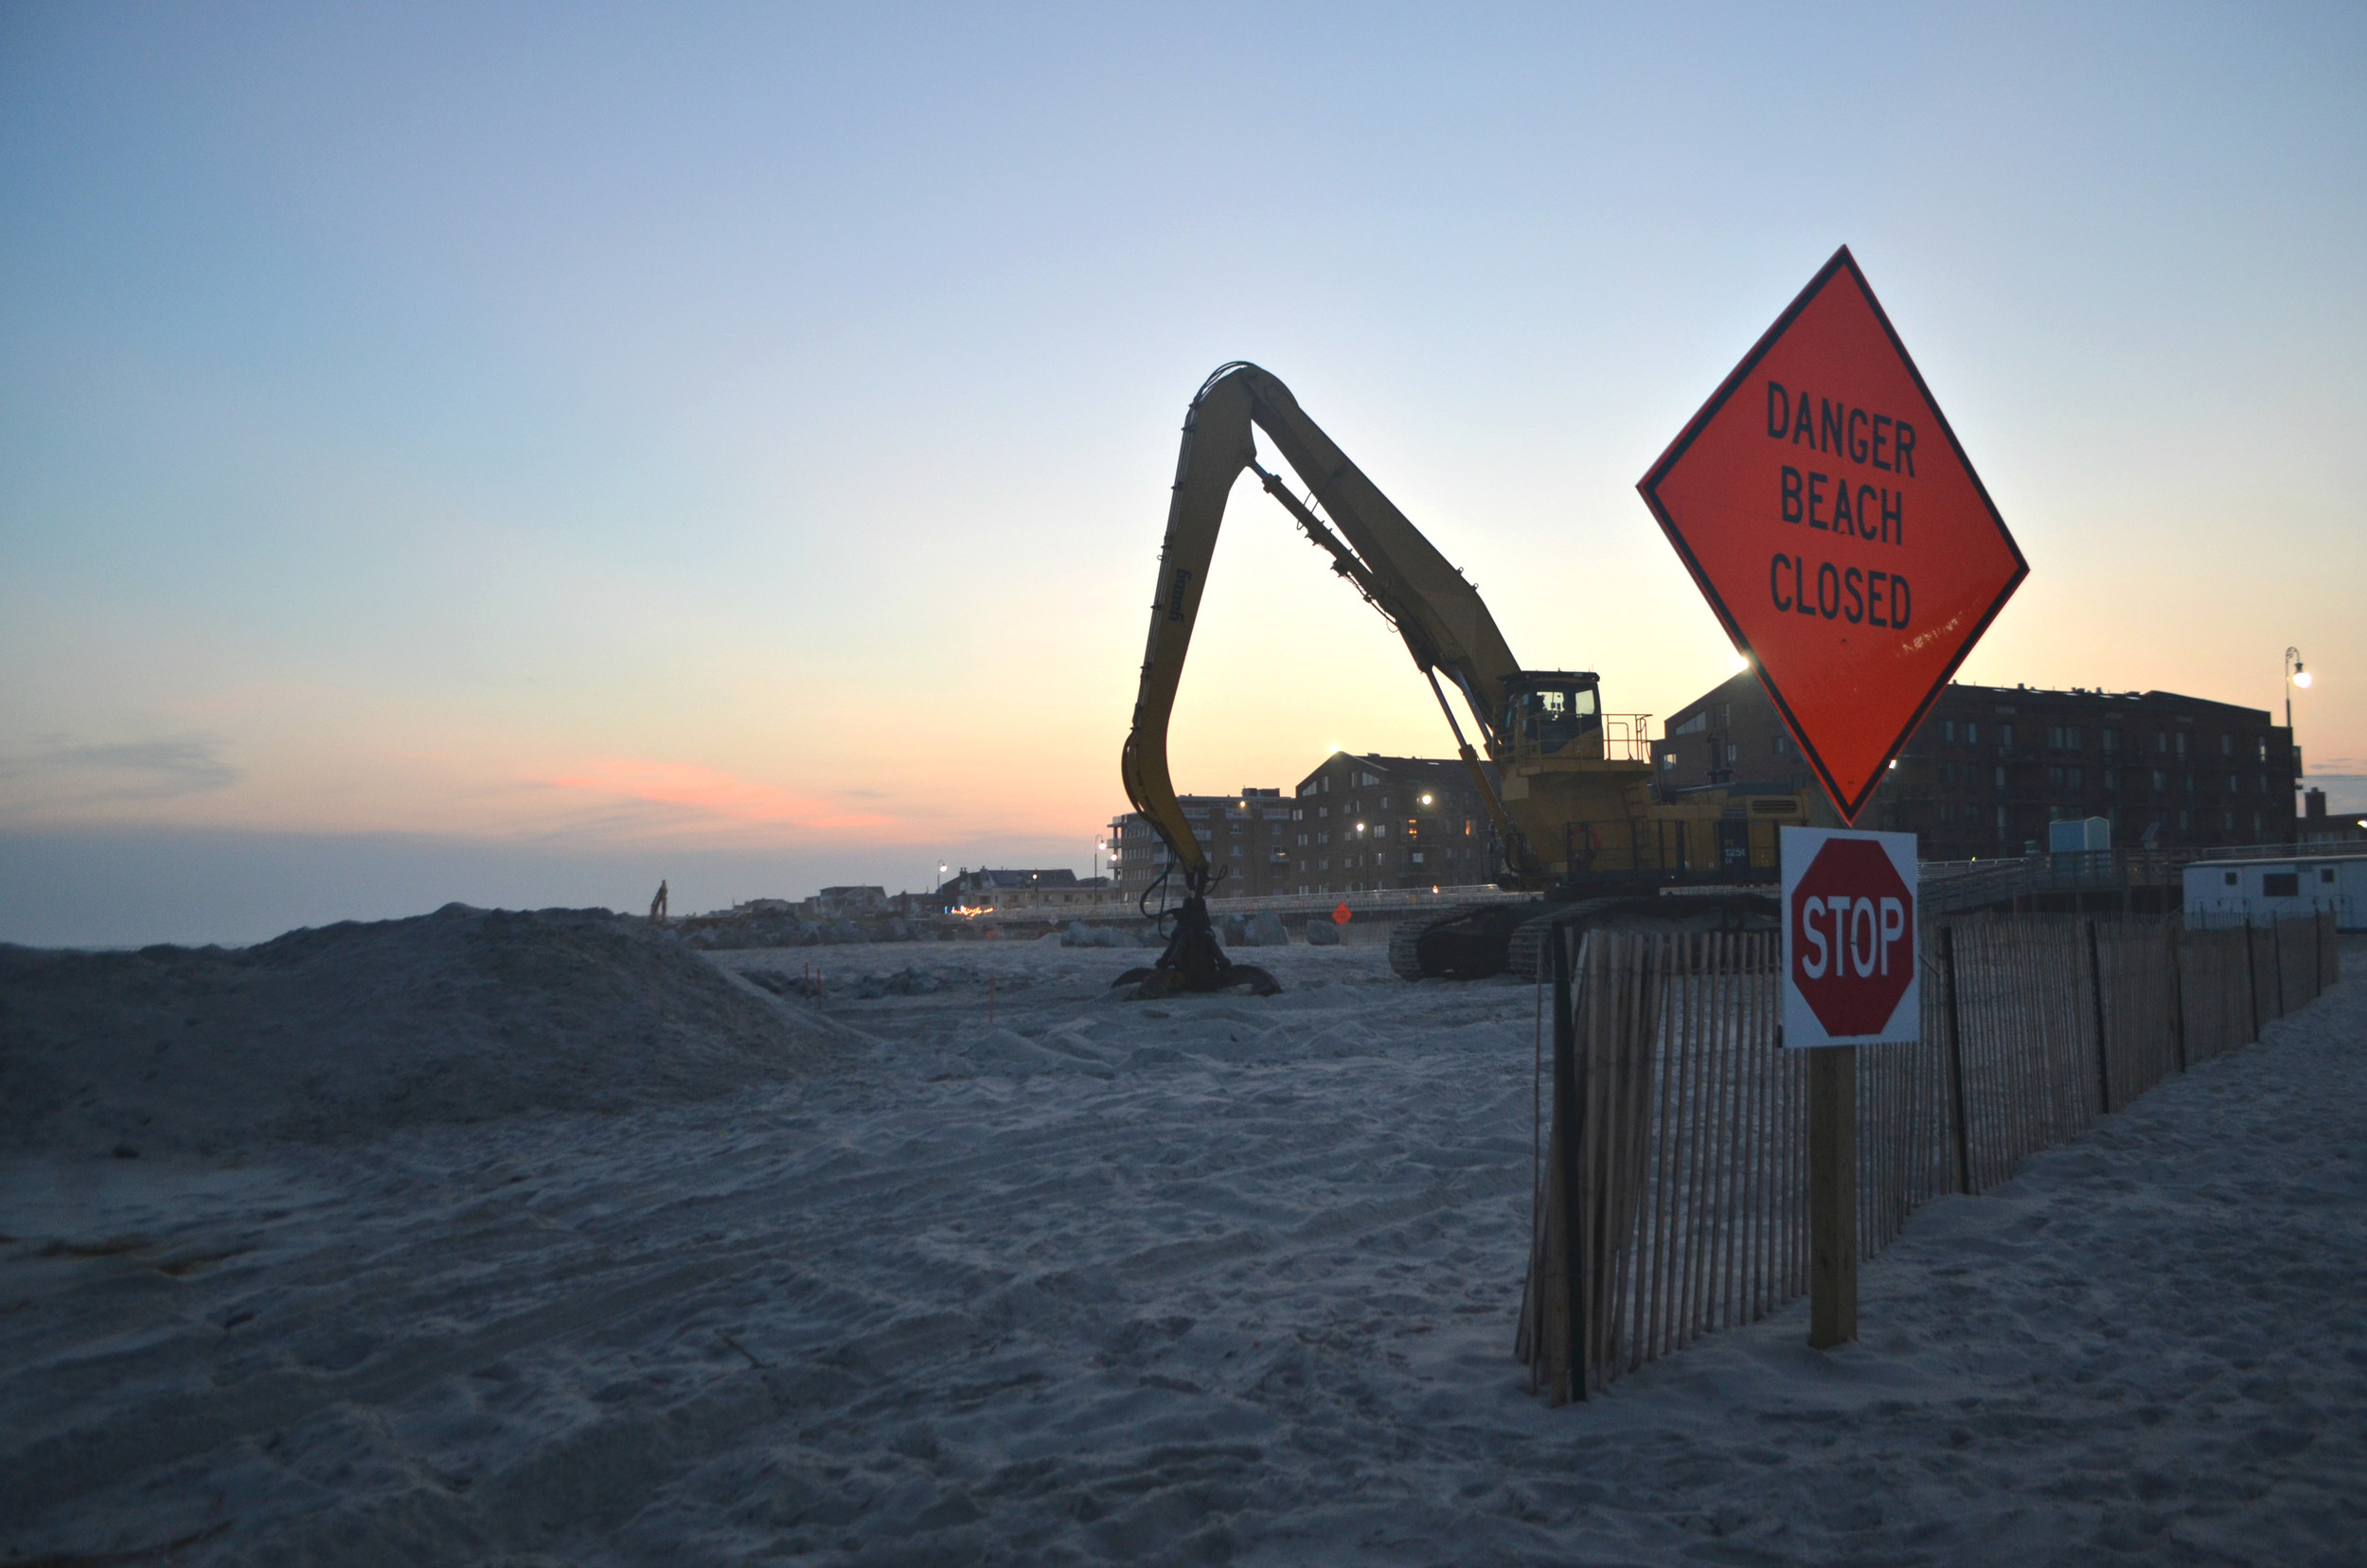 Eight weeks ahead of schedule, the Army Corps moved its work rebuilding the jetties to Grand Boulevard beach this week at the city's request to minimize beach closures during the summer season.